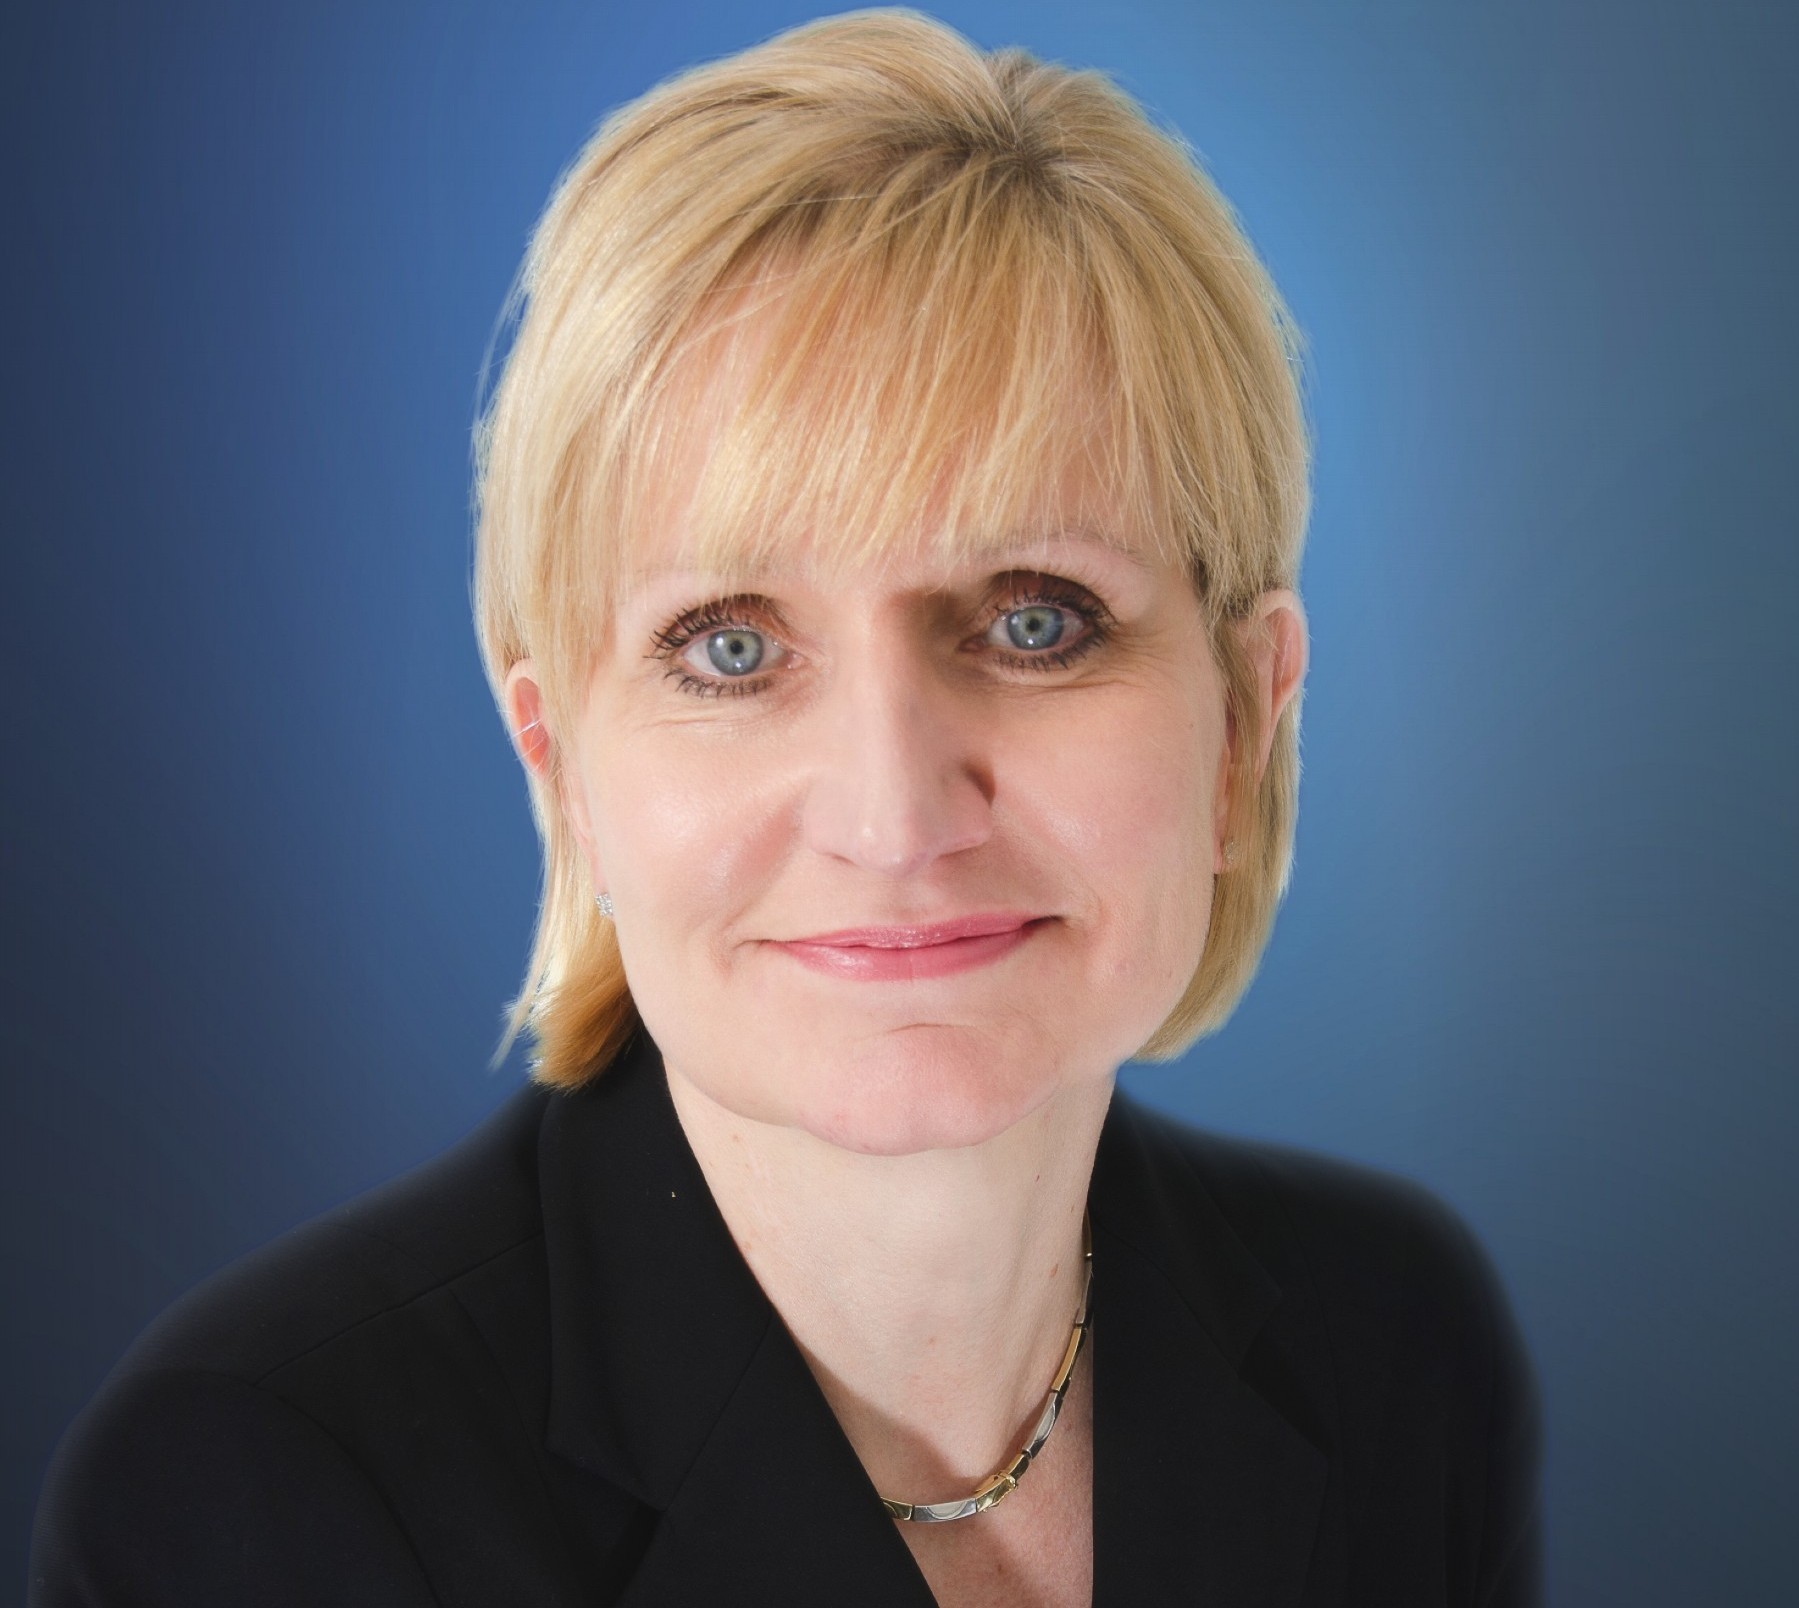 Oil & Gas UK chief executive Deirdre Michie